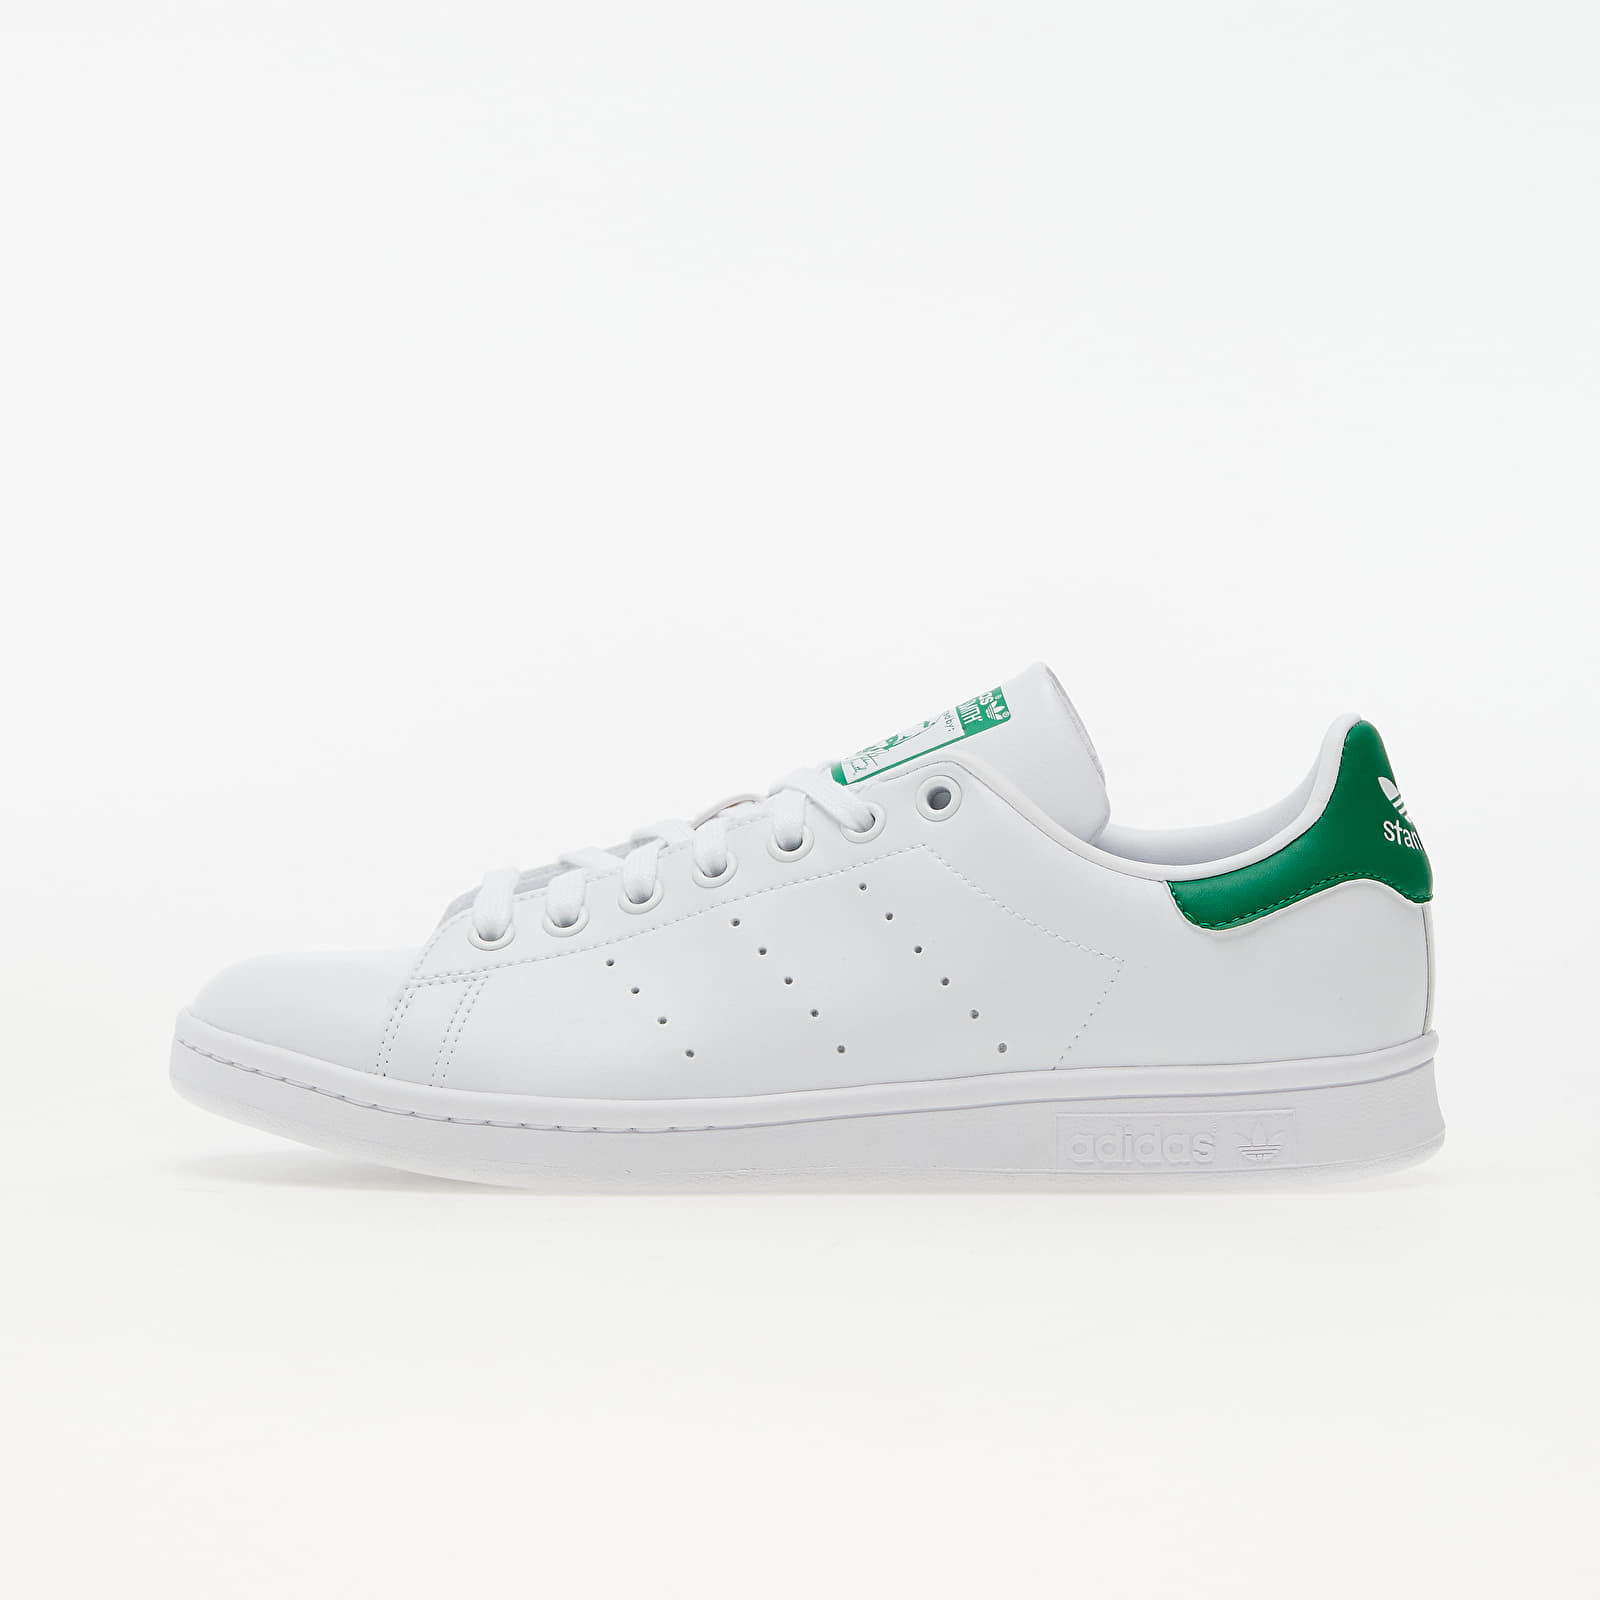 adidas Stan Smith Ftw White/ Ftw White/ Green EUR 42